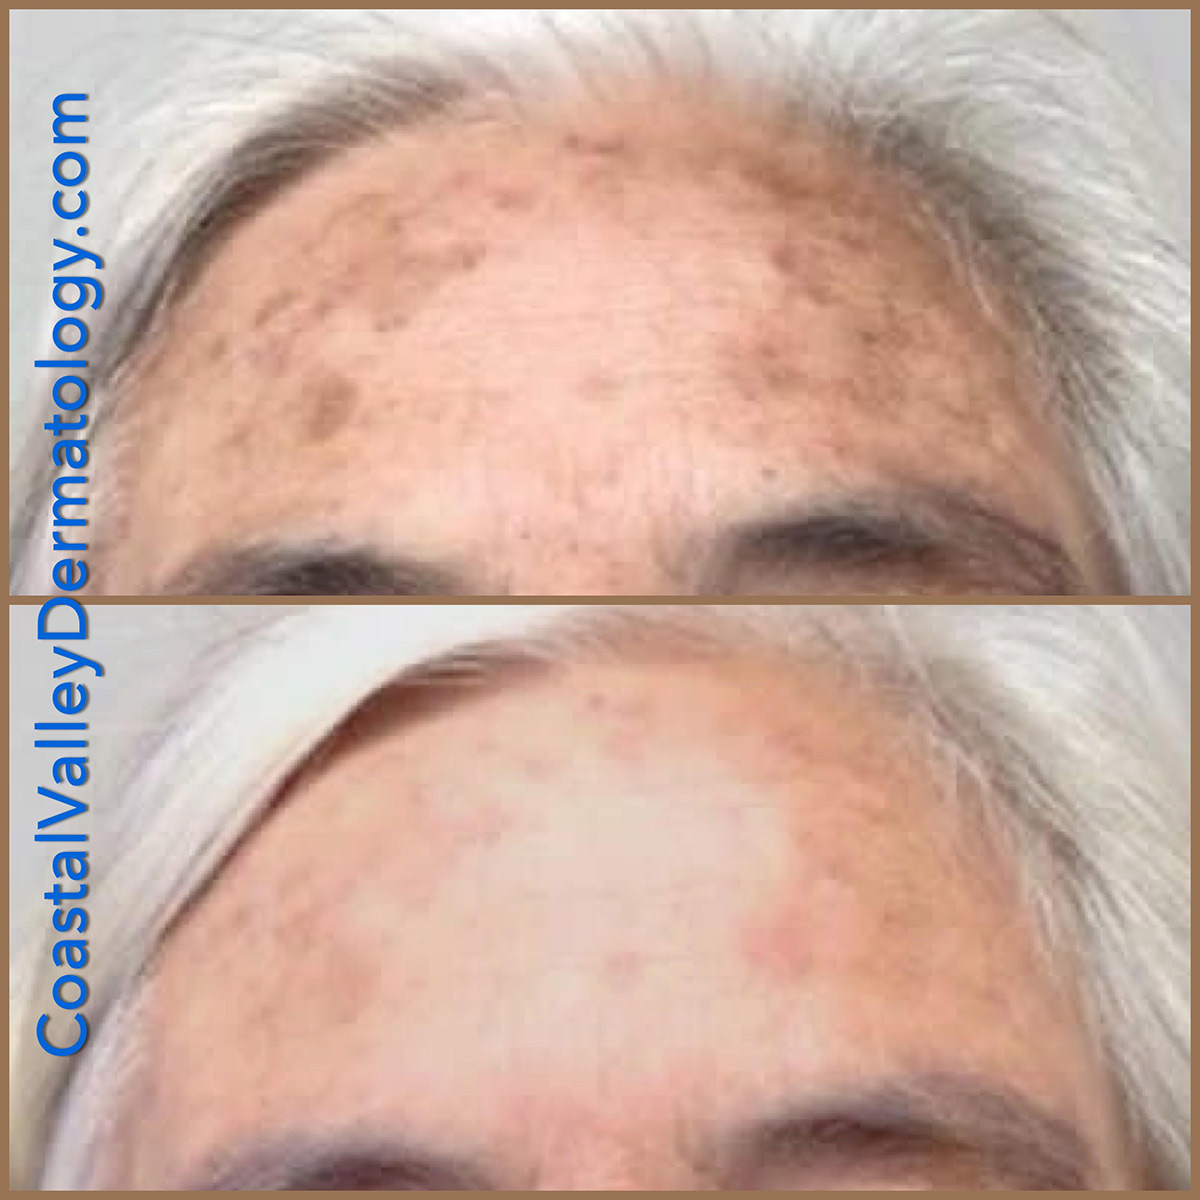 coastal-valley-dermatology-carmel-bbl-before-after-photo